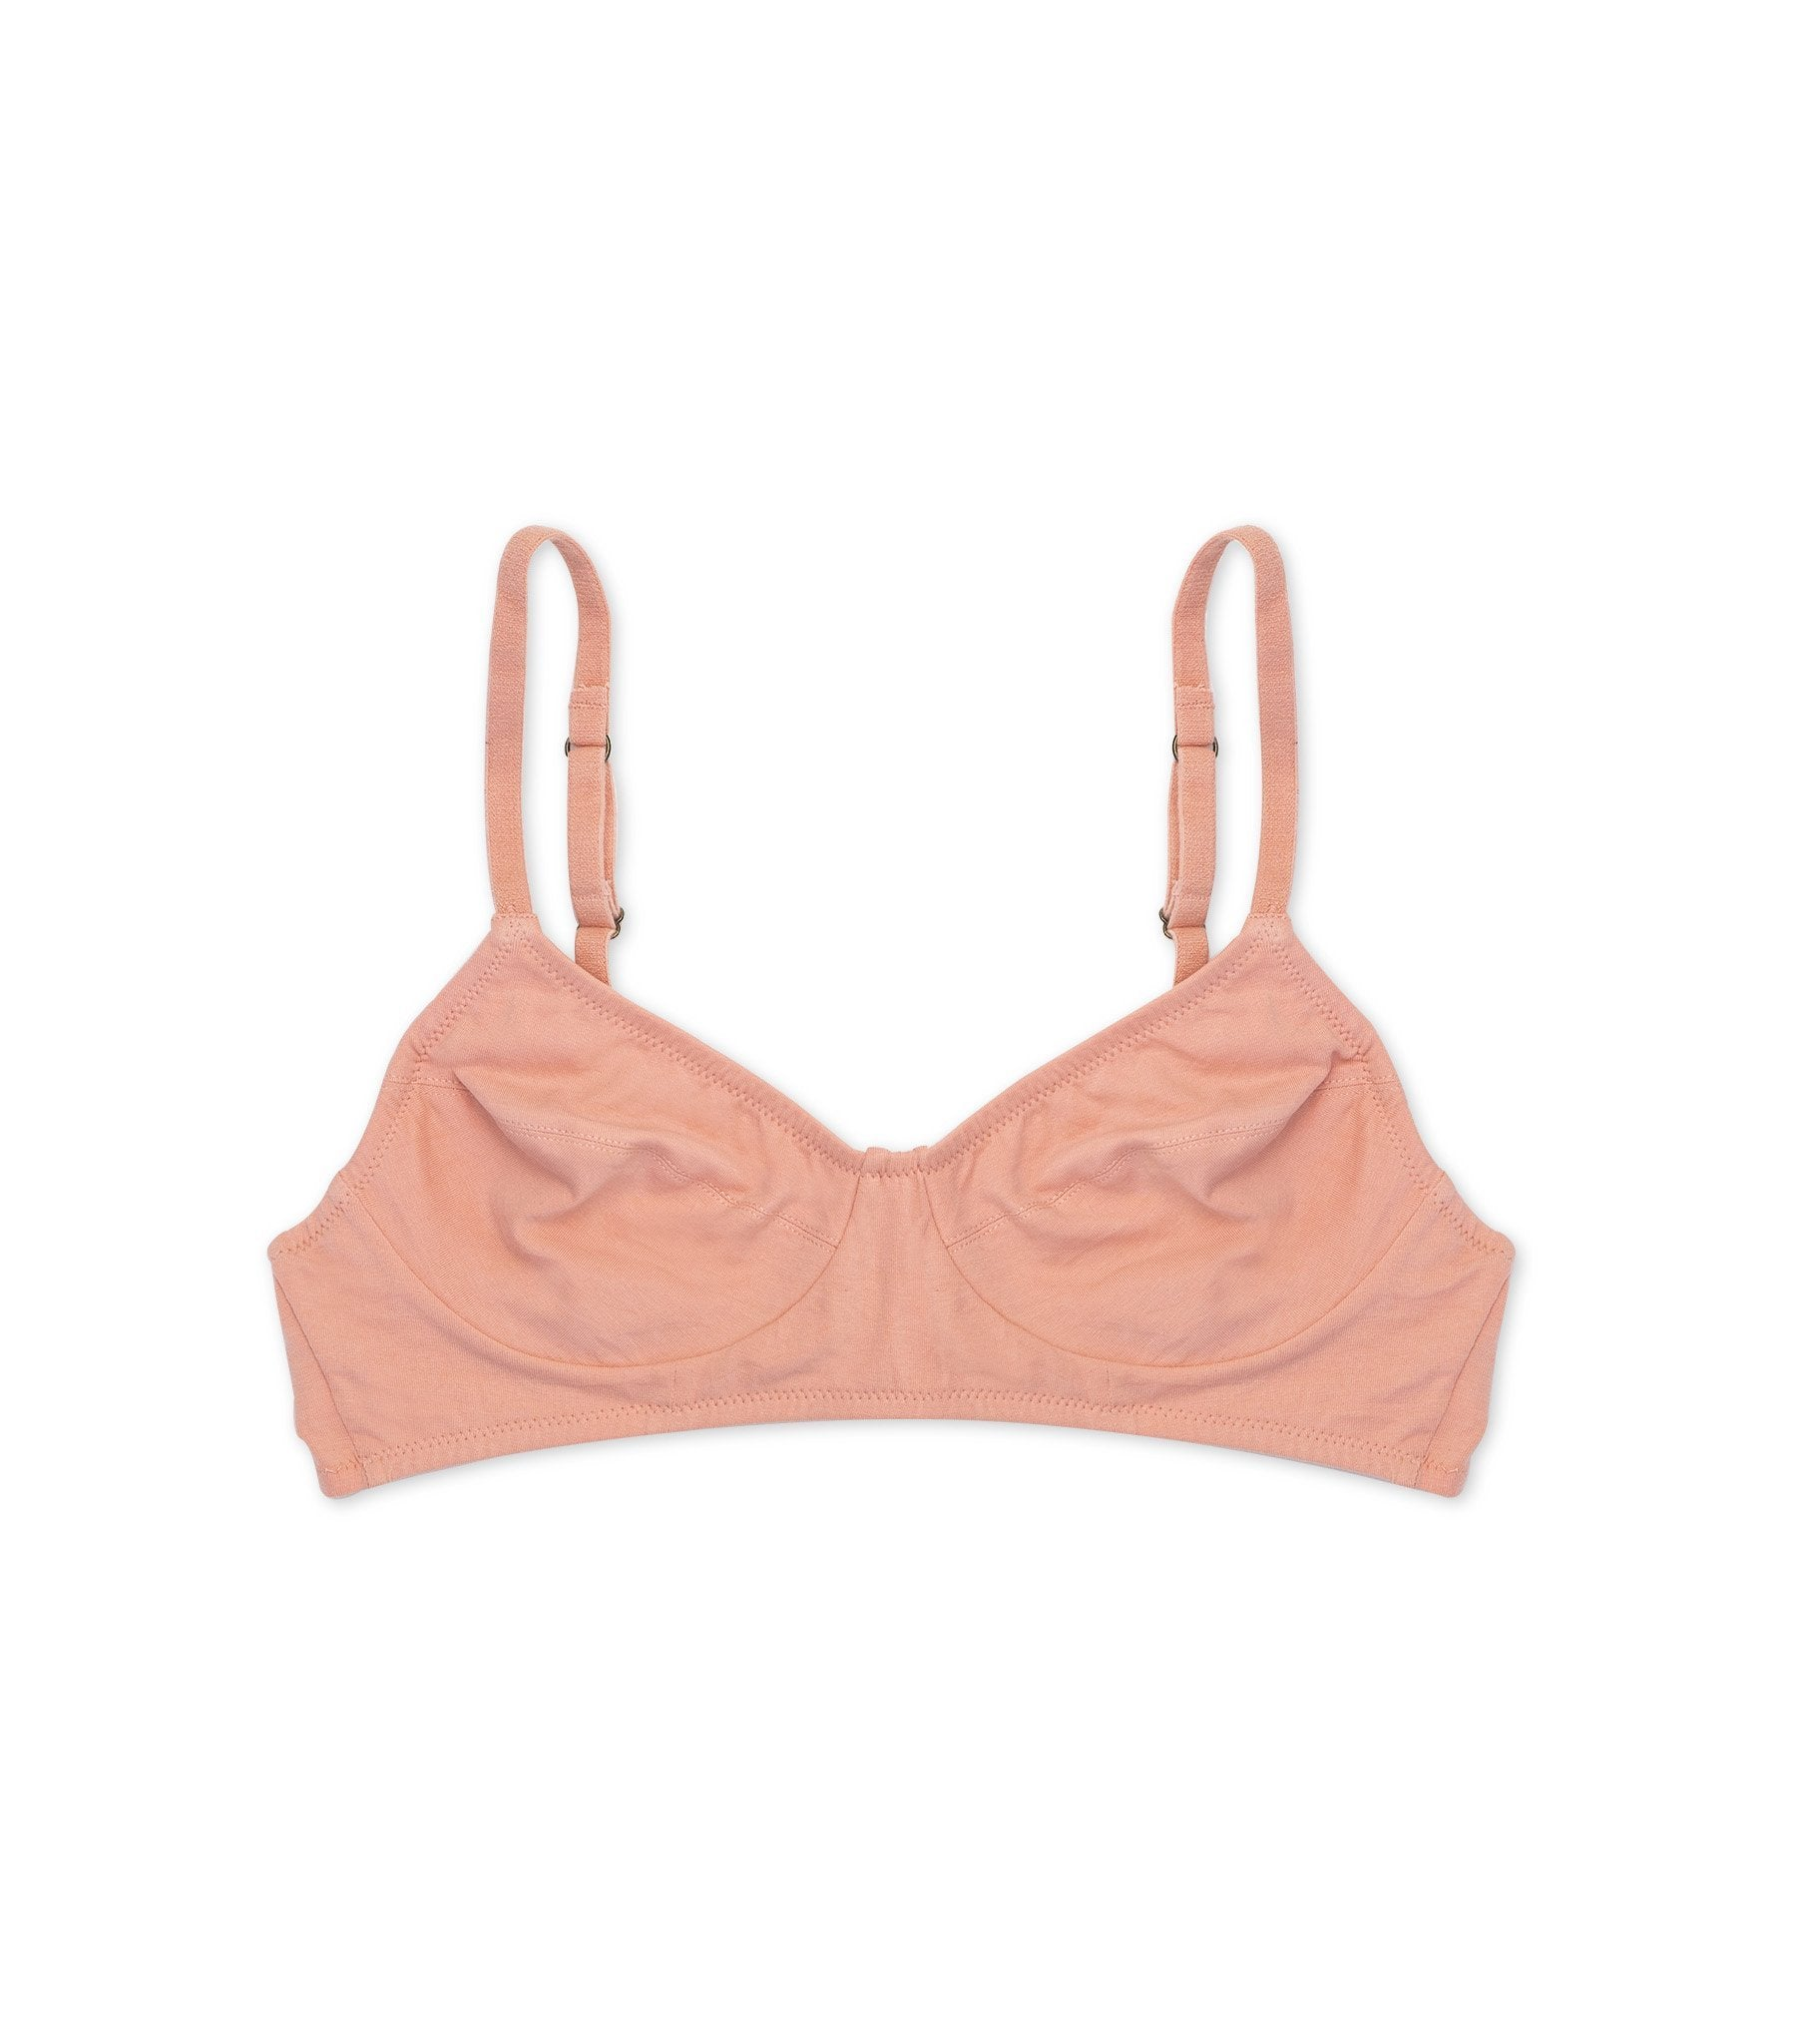 Full Cup Wirefree Bralette